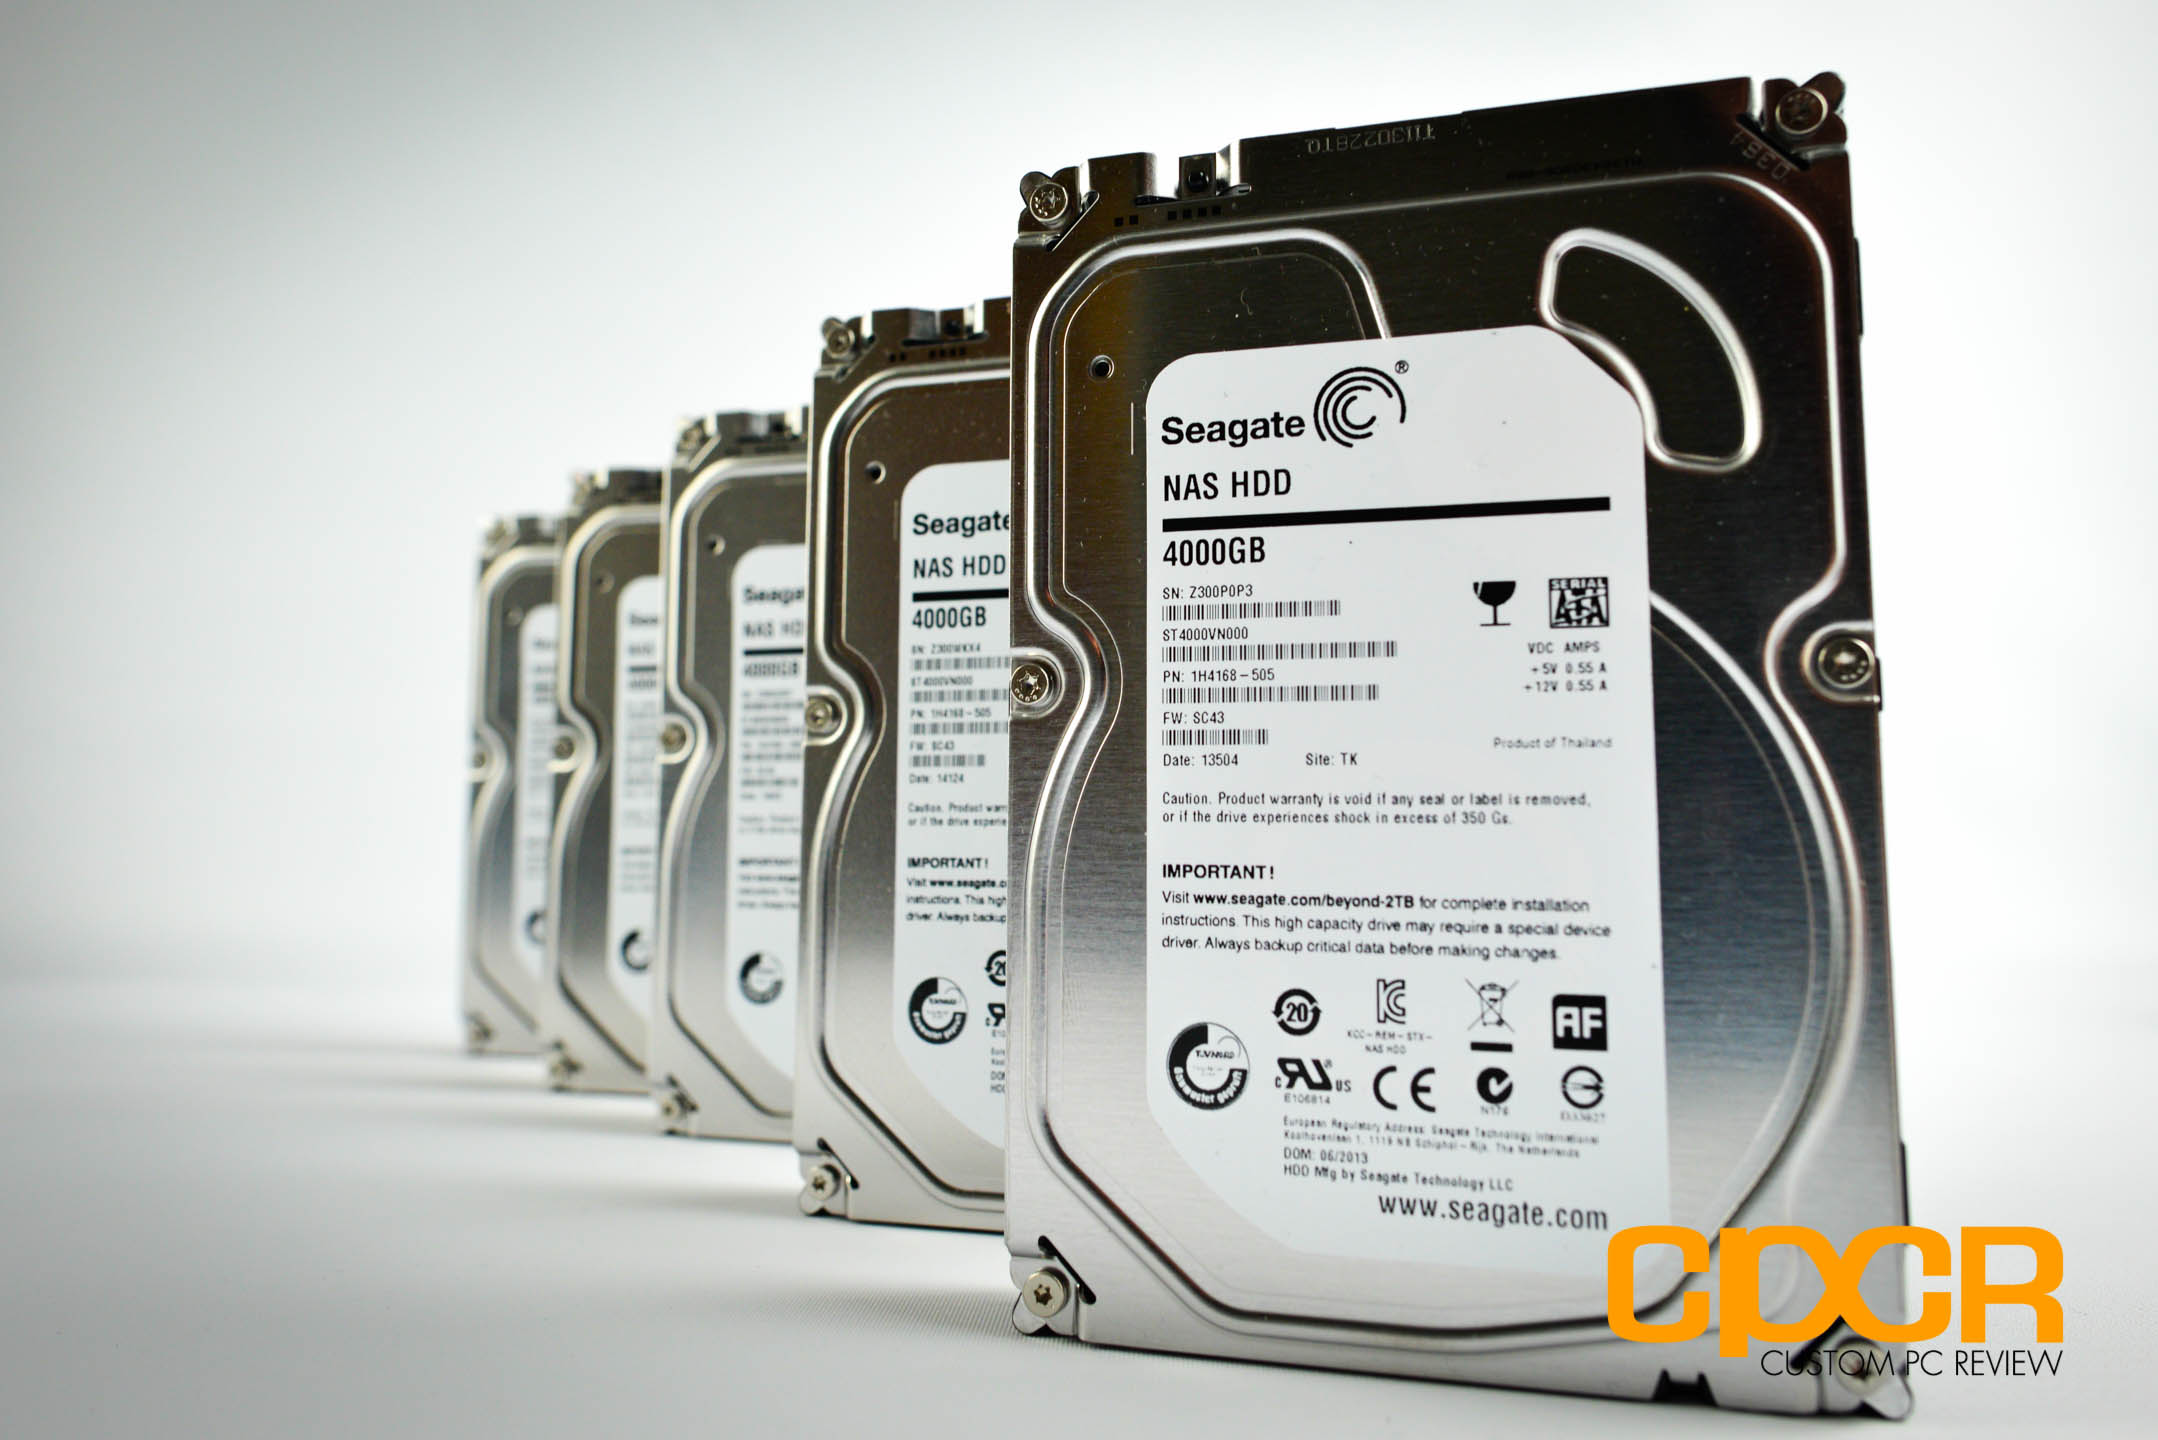 The Best Hdd For Your Nas Networked Attached Storage Custom Pc Wd 4tb Purple Sata3 35 Seagate Review 2